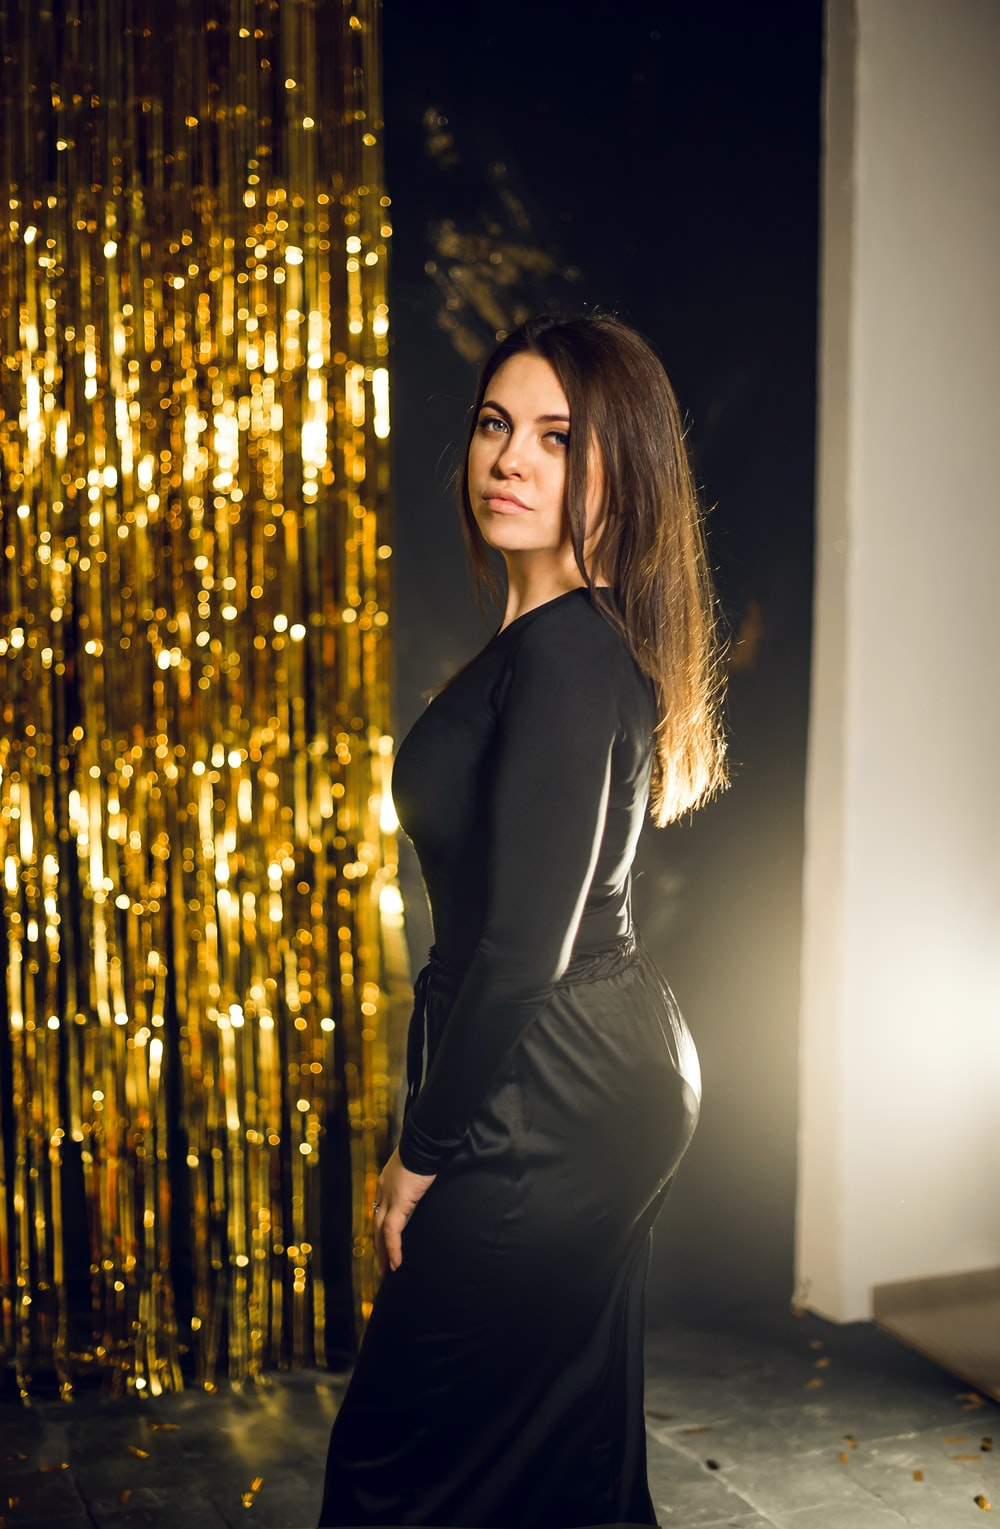 woman in black long sleeve dress standing beside brown string lights